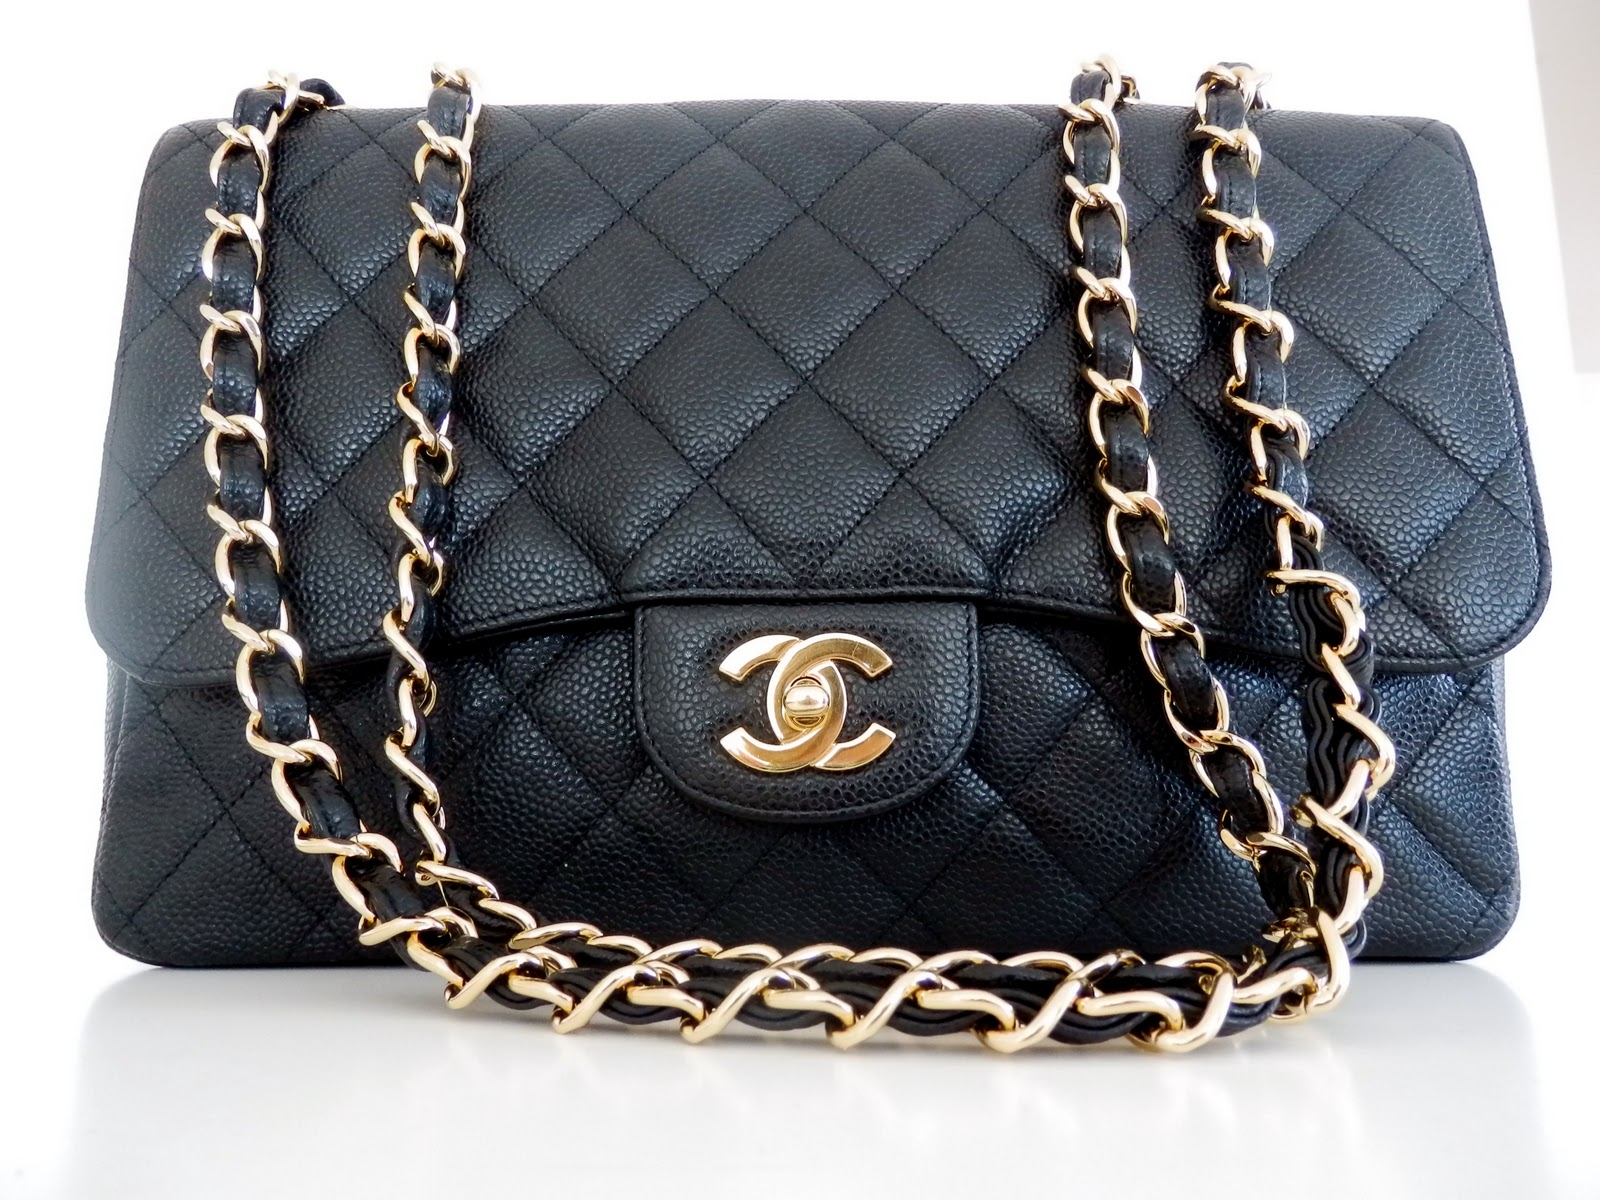 04f43b6b6ba4 Chanel Flap Bag 2.55 Size. Chanel 2.55 Caviar Medium Classic Double ...